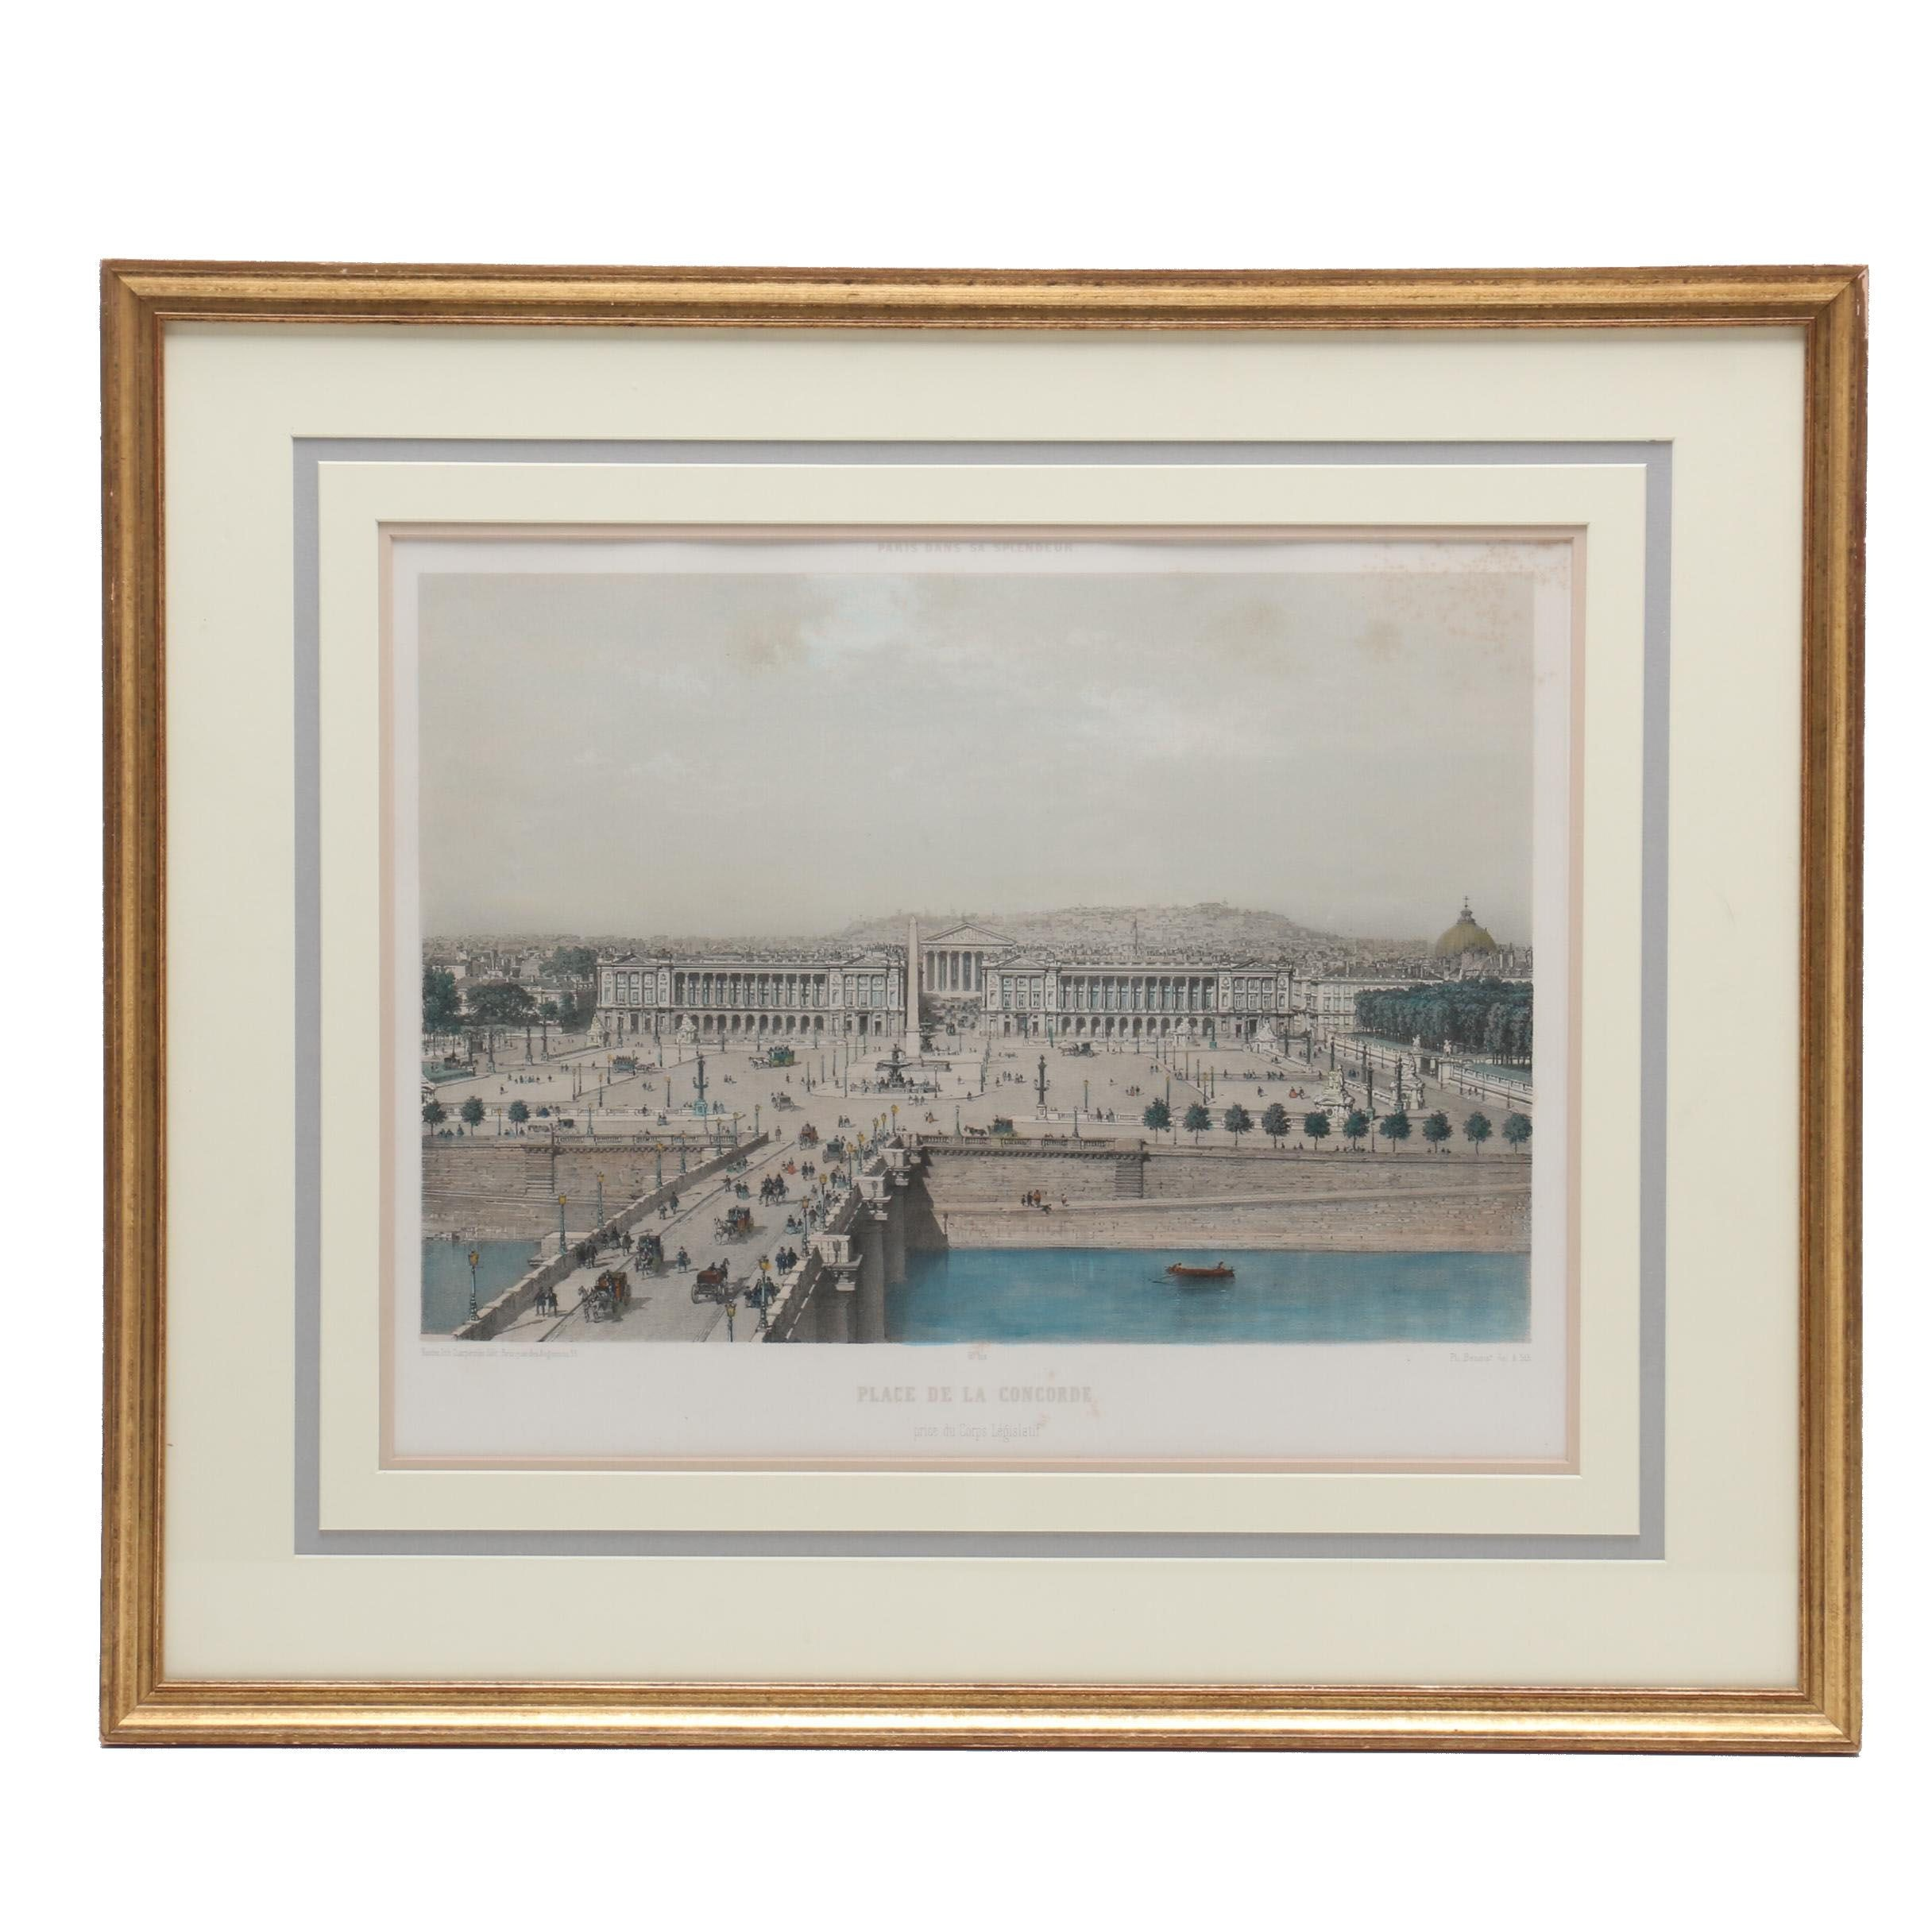 "Lithograph after Von Philippe Benoist ""Paris Dans Sa Splendeur"""